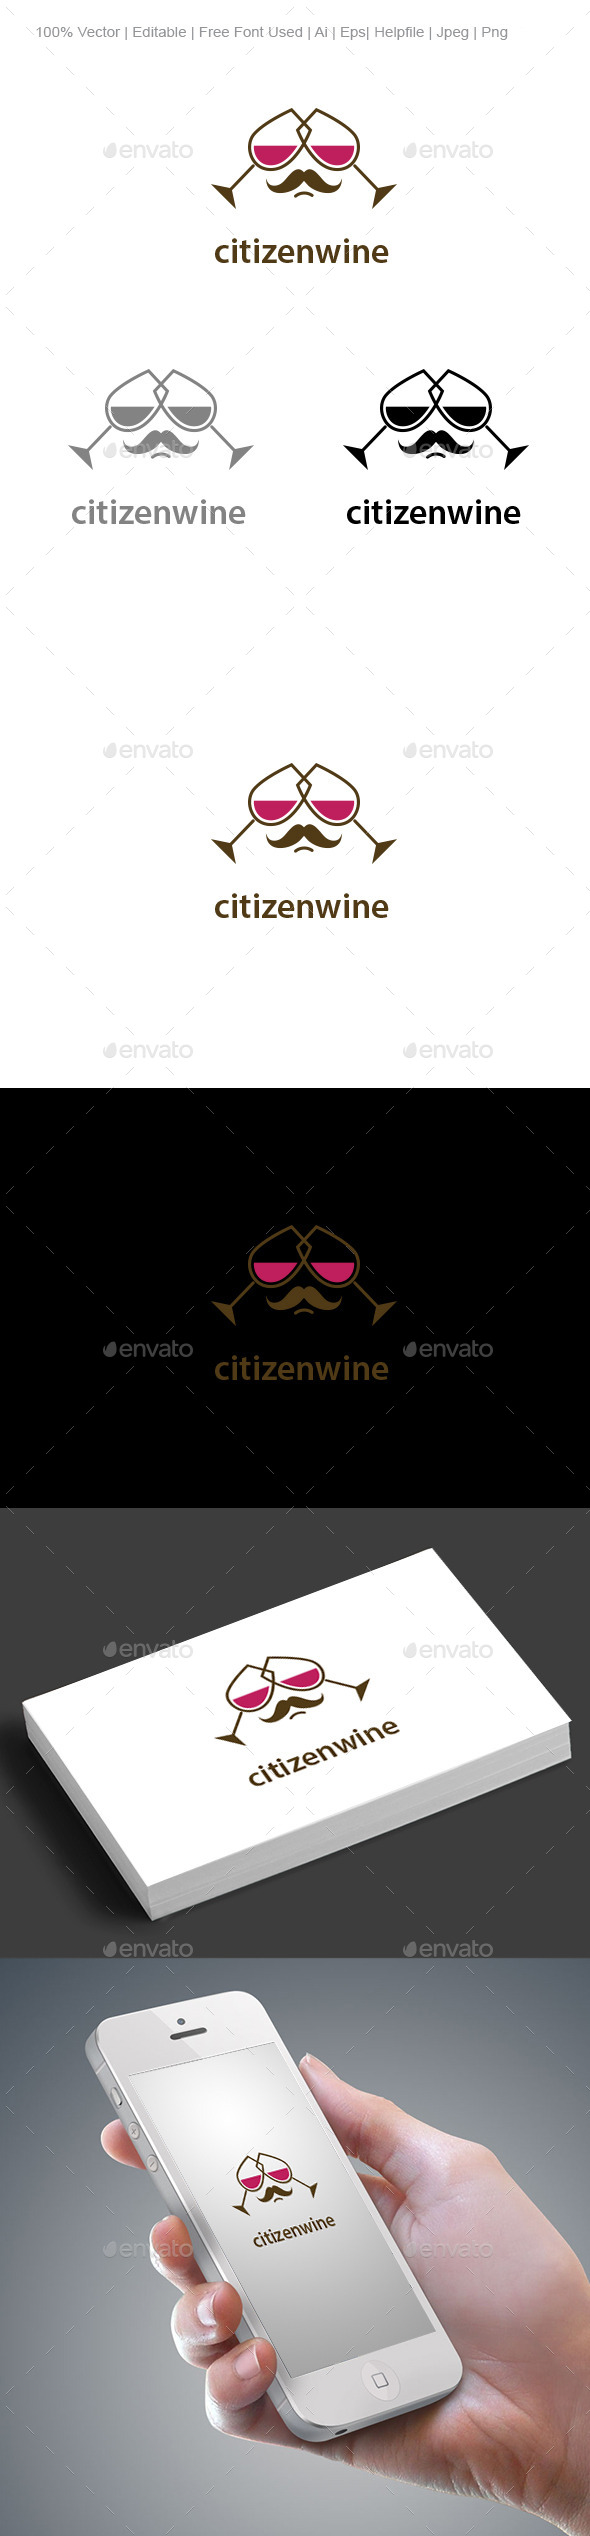 GraphicRiver Citizenwine 11804695